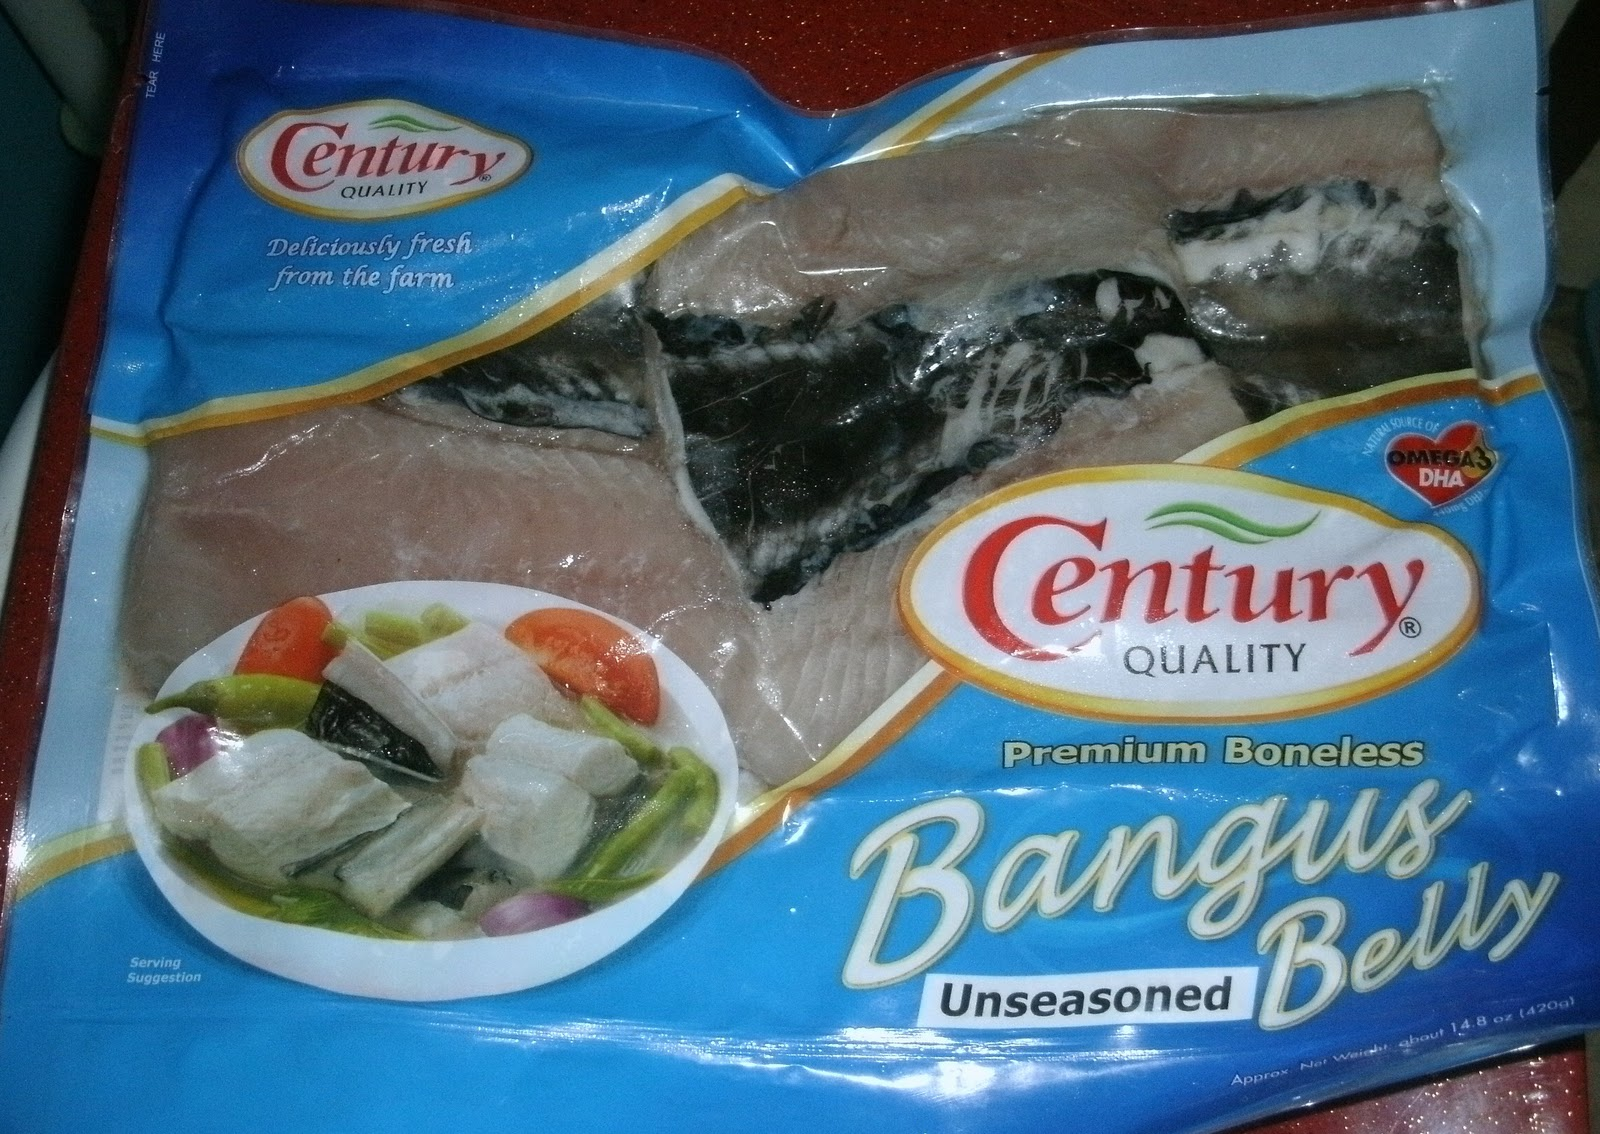 Image of packaged boneless bangus from the Philipppines